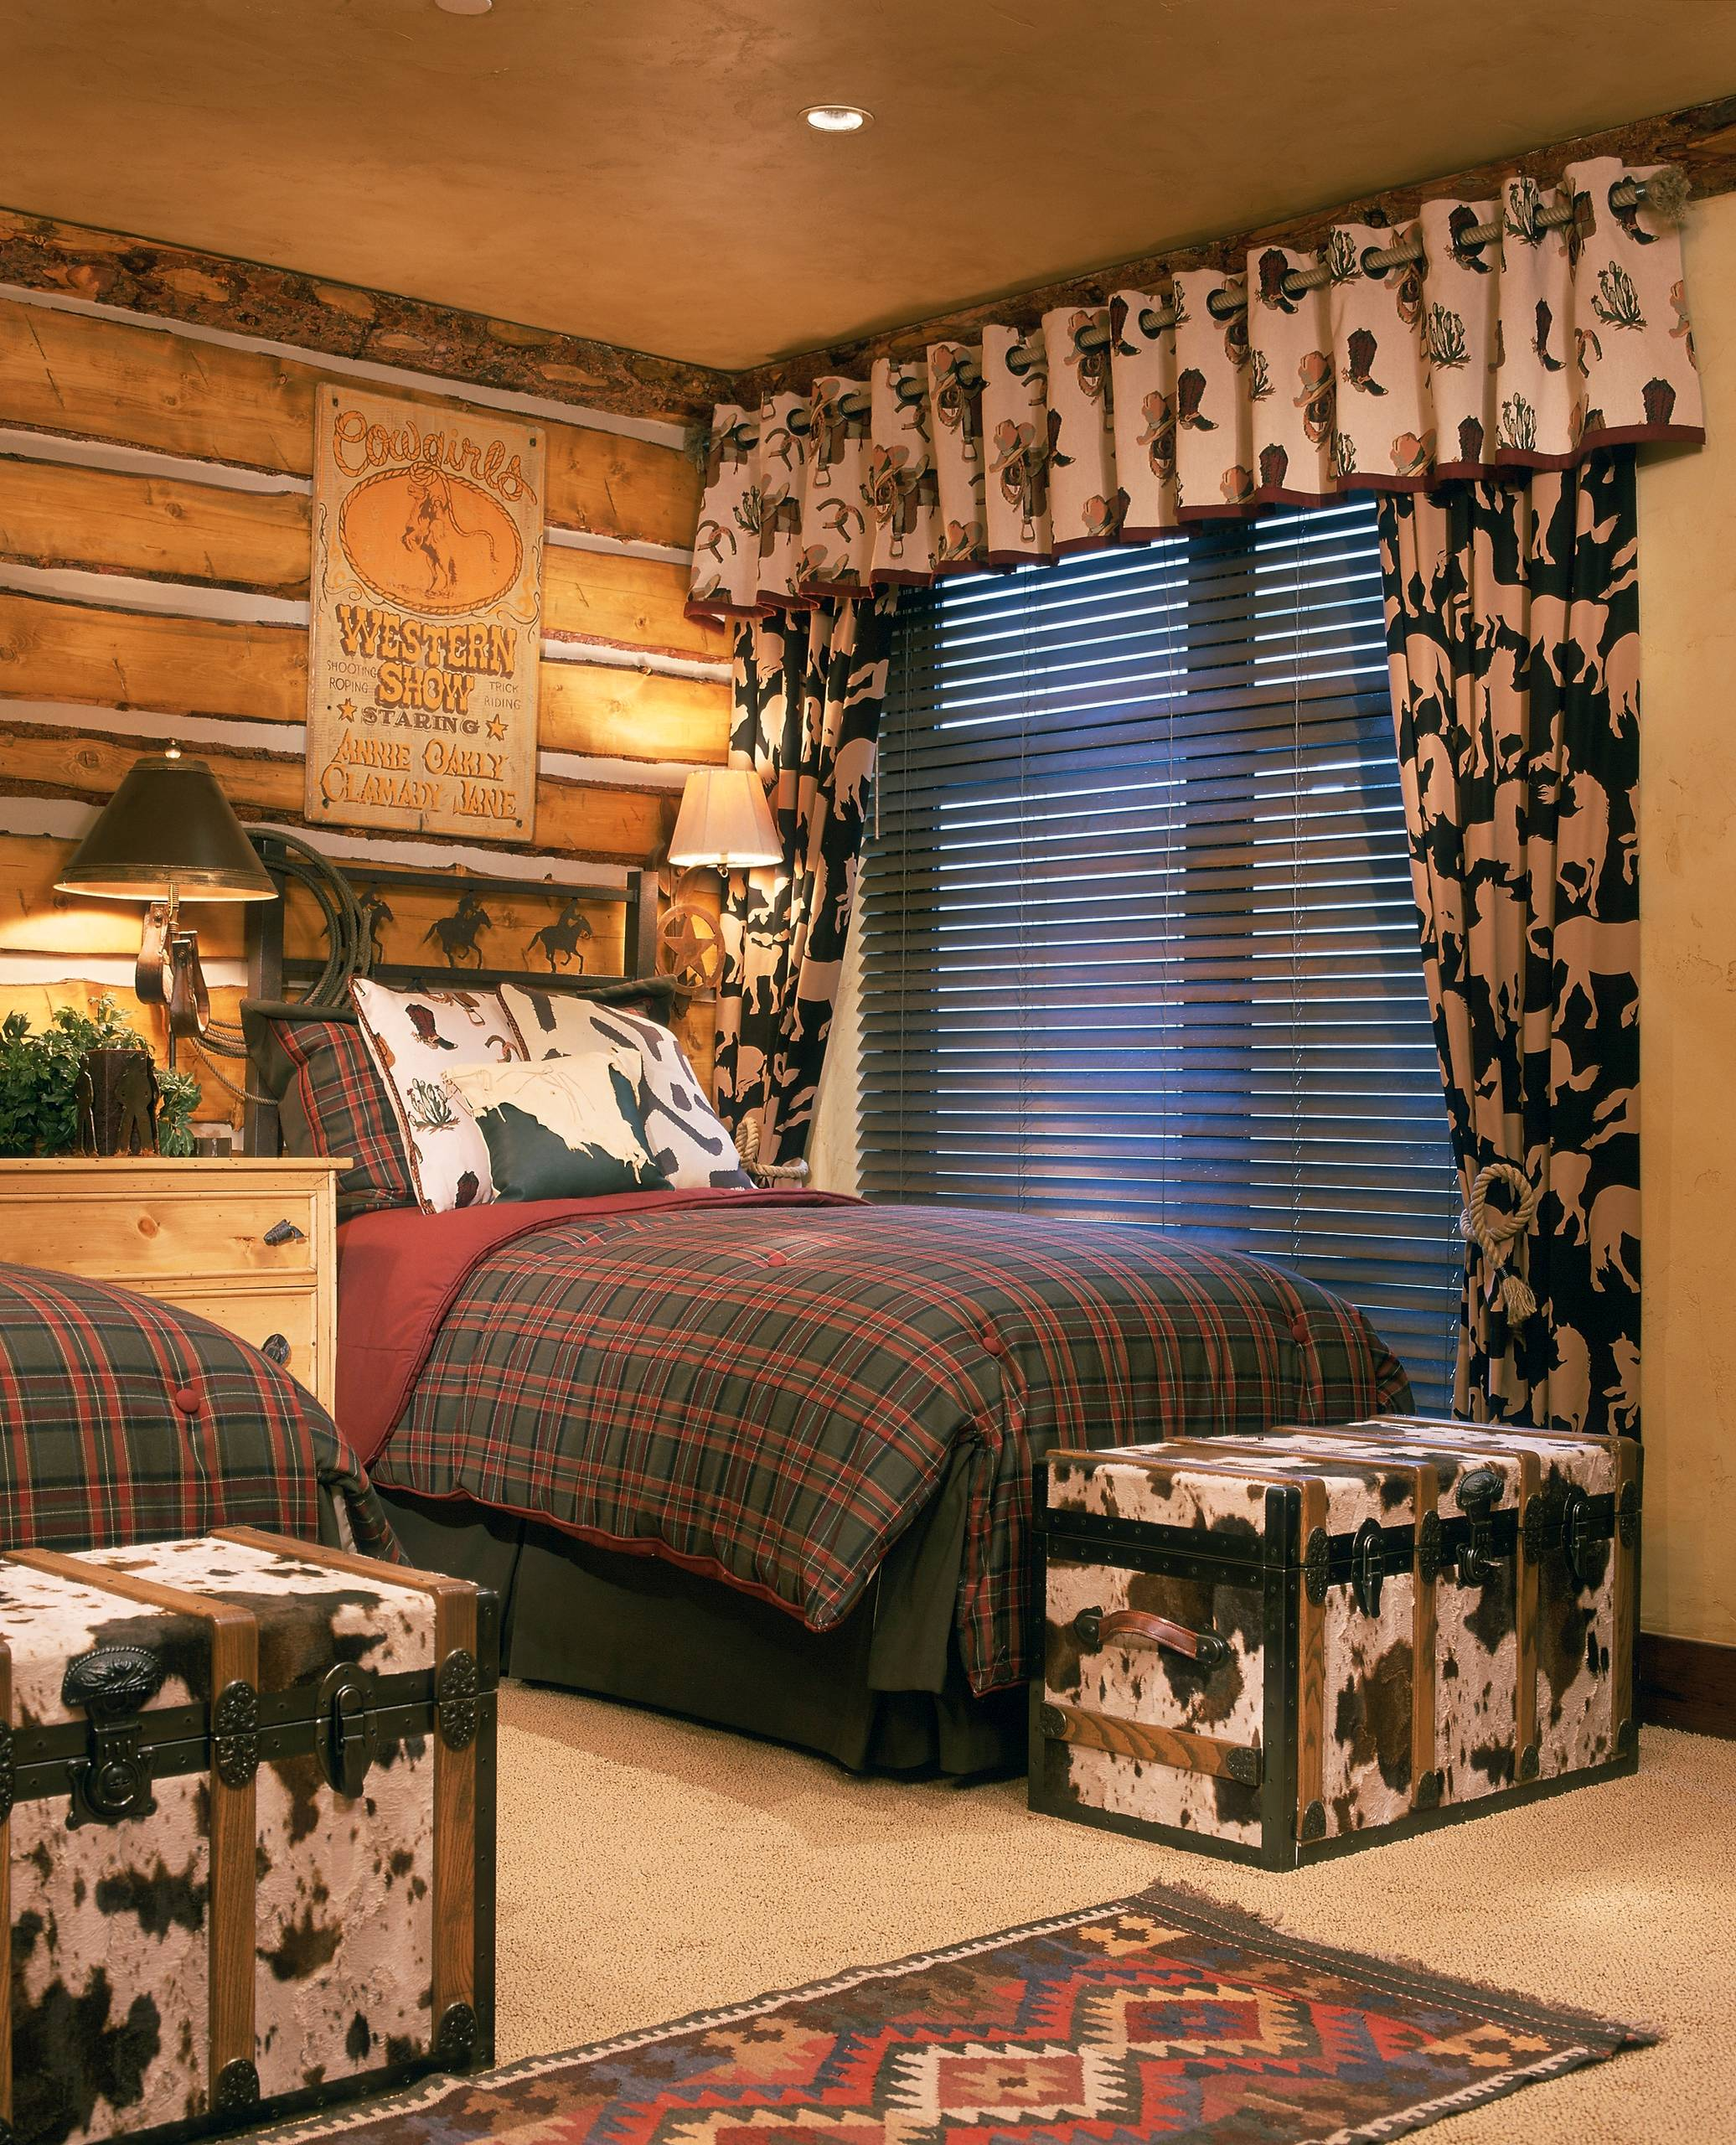 15 Charming Rustic Kids' Room Designs That Strike With ...